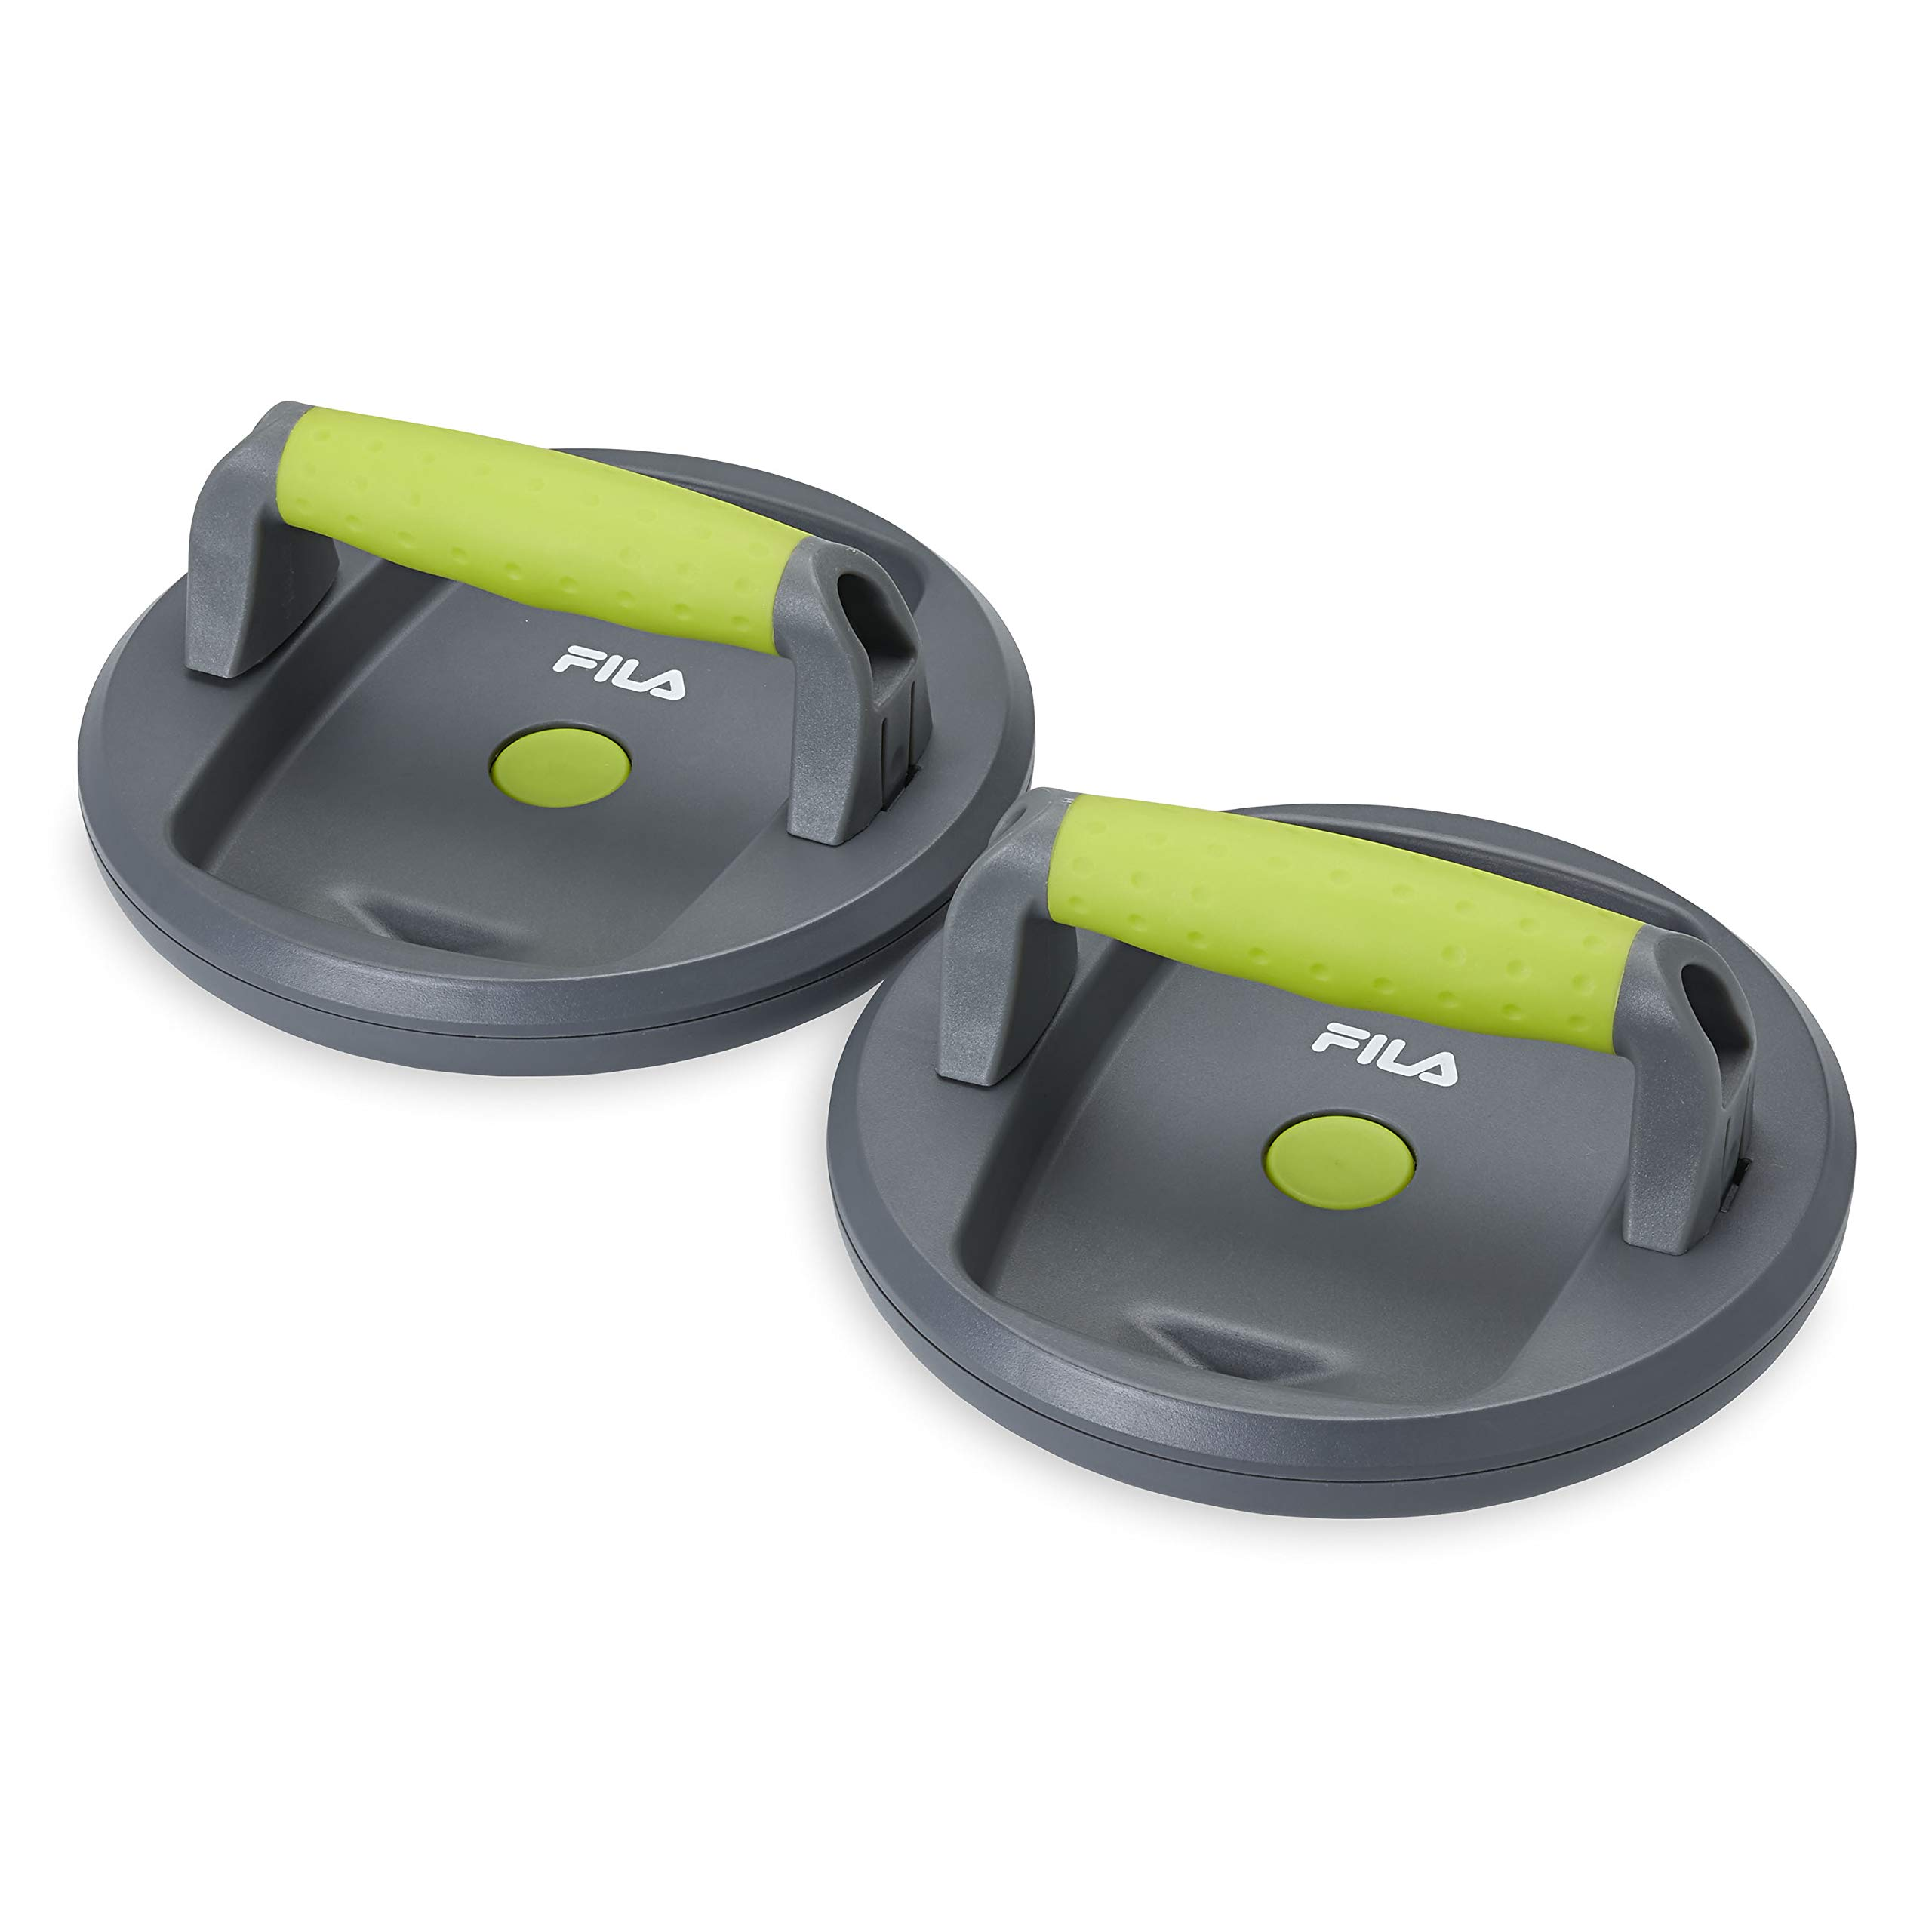 FILA Accessories Push-Up Pods for a Perfect Pushup (Set of 2) product